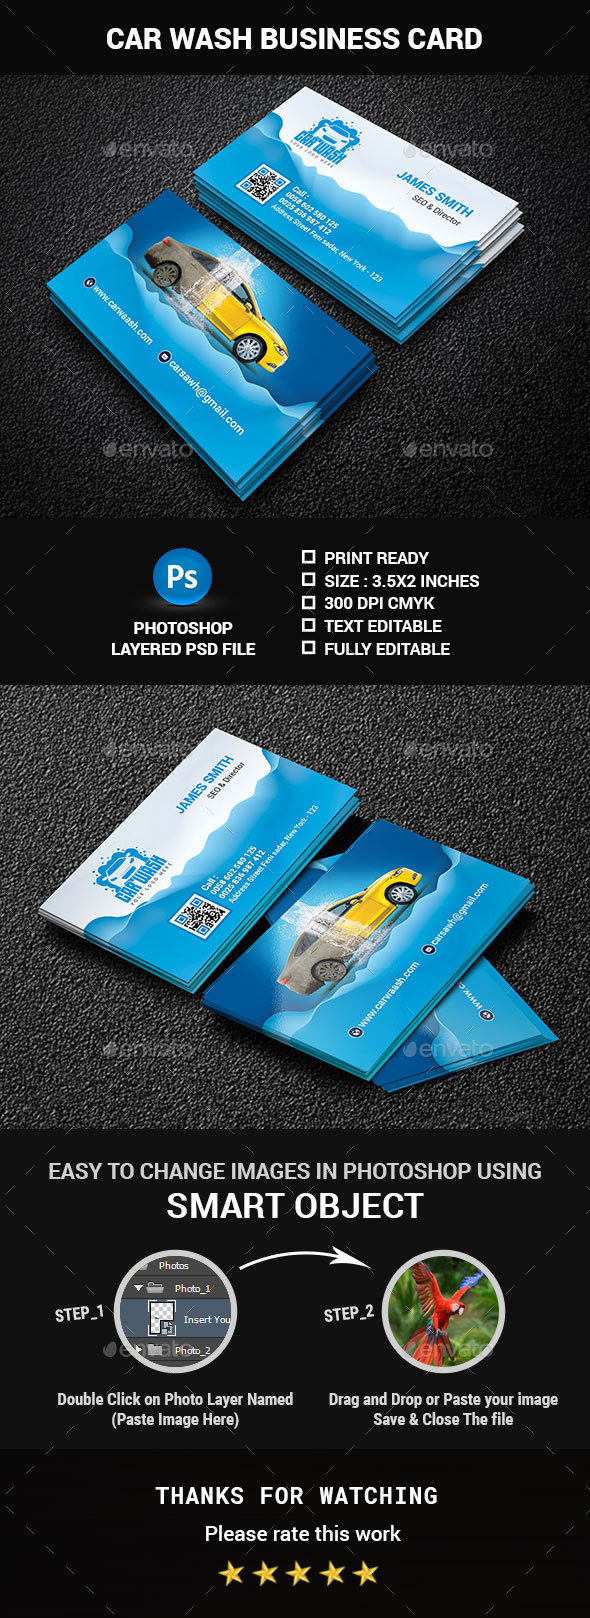 Car Wash Business Card - Creative Business Cards